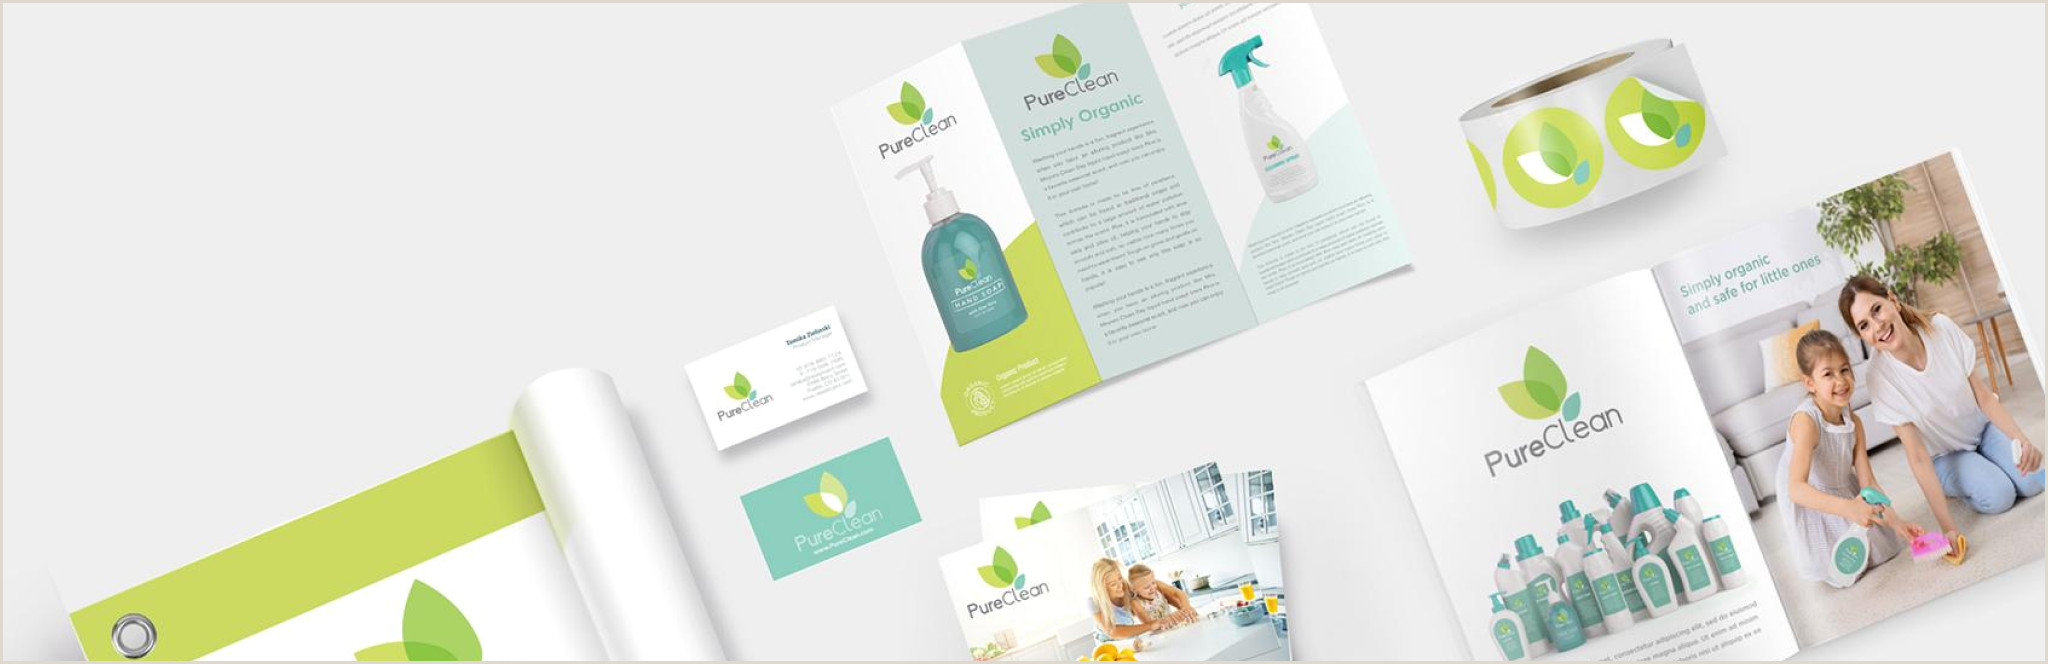 Printing Company Business Card Printplace High Quality Line Printing Services